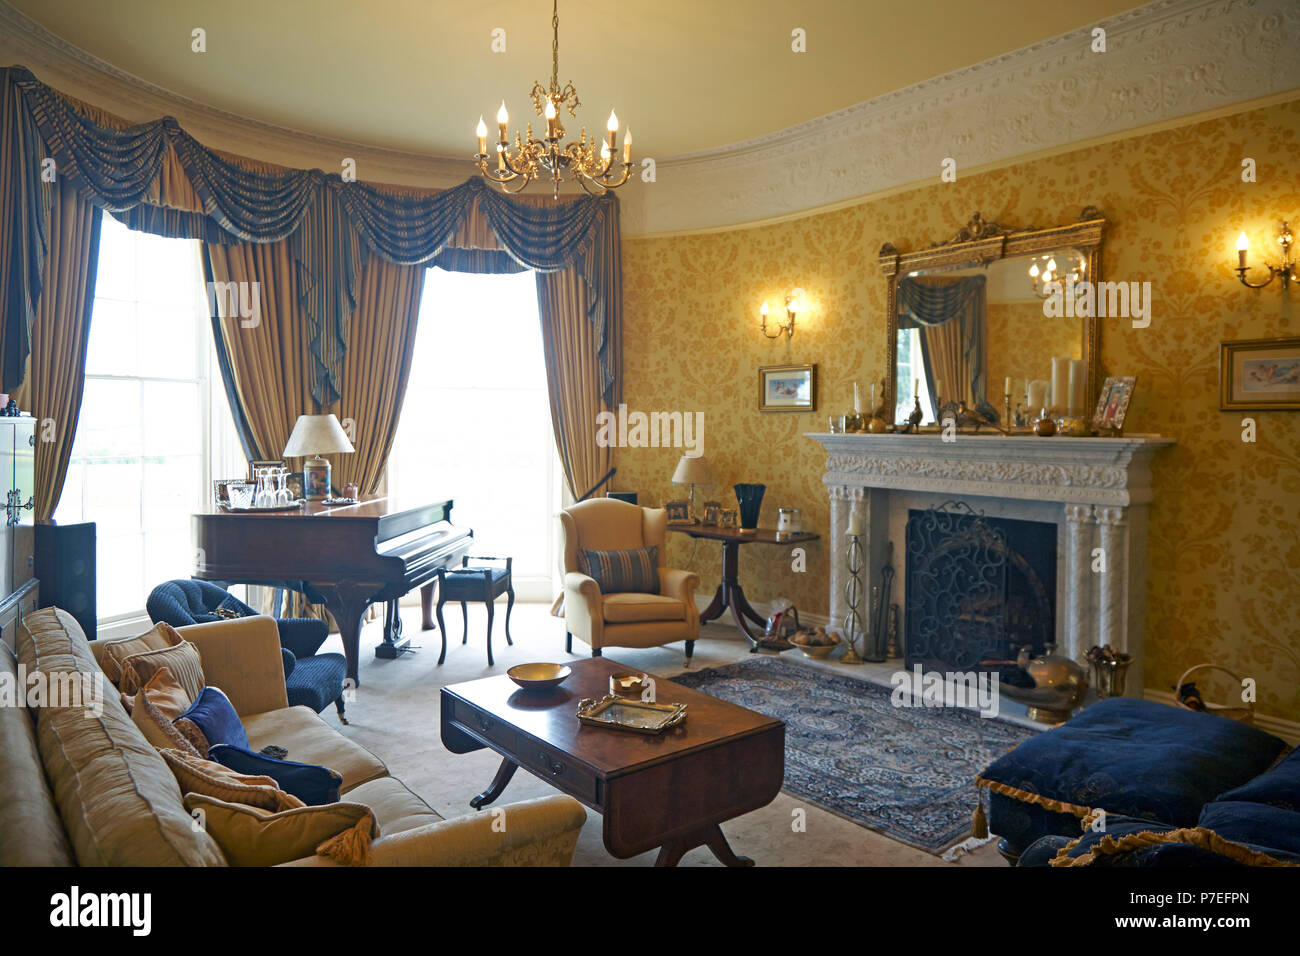 Property released Privately owned beautiful country manor house and farm buildings converted into first class quality homes in South Yorkshire - Stock Image